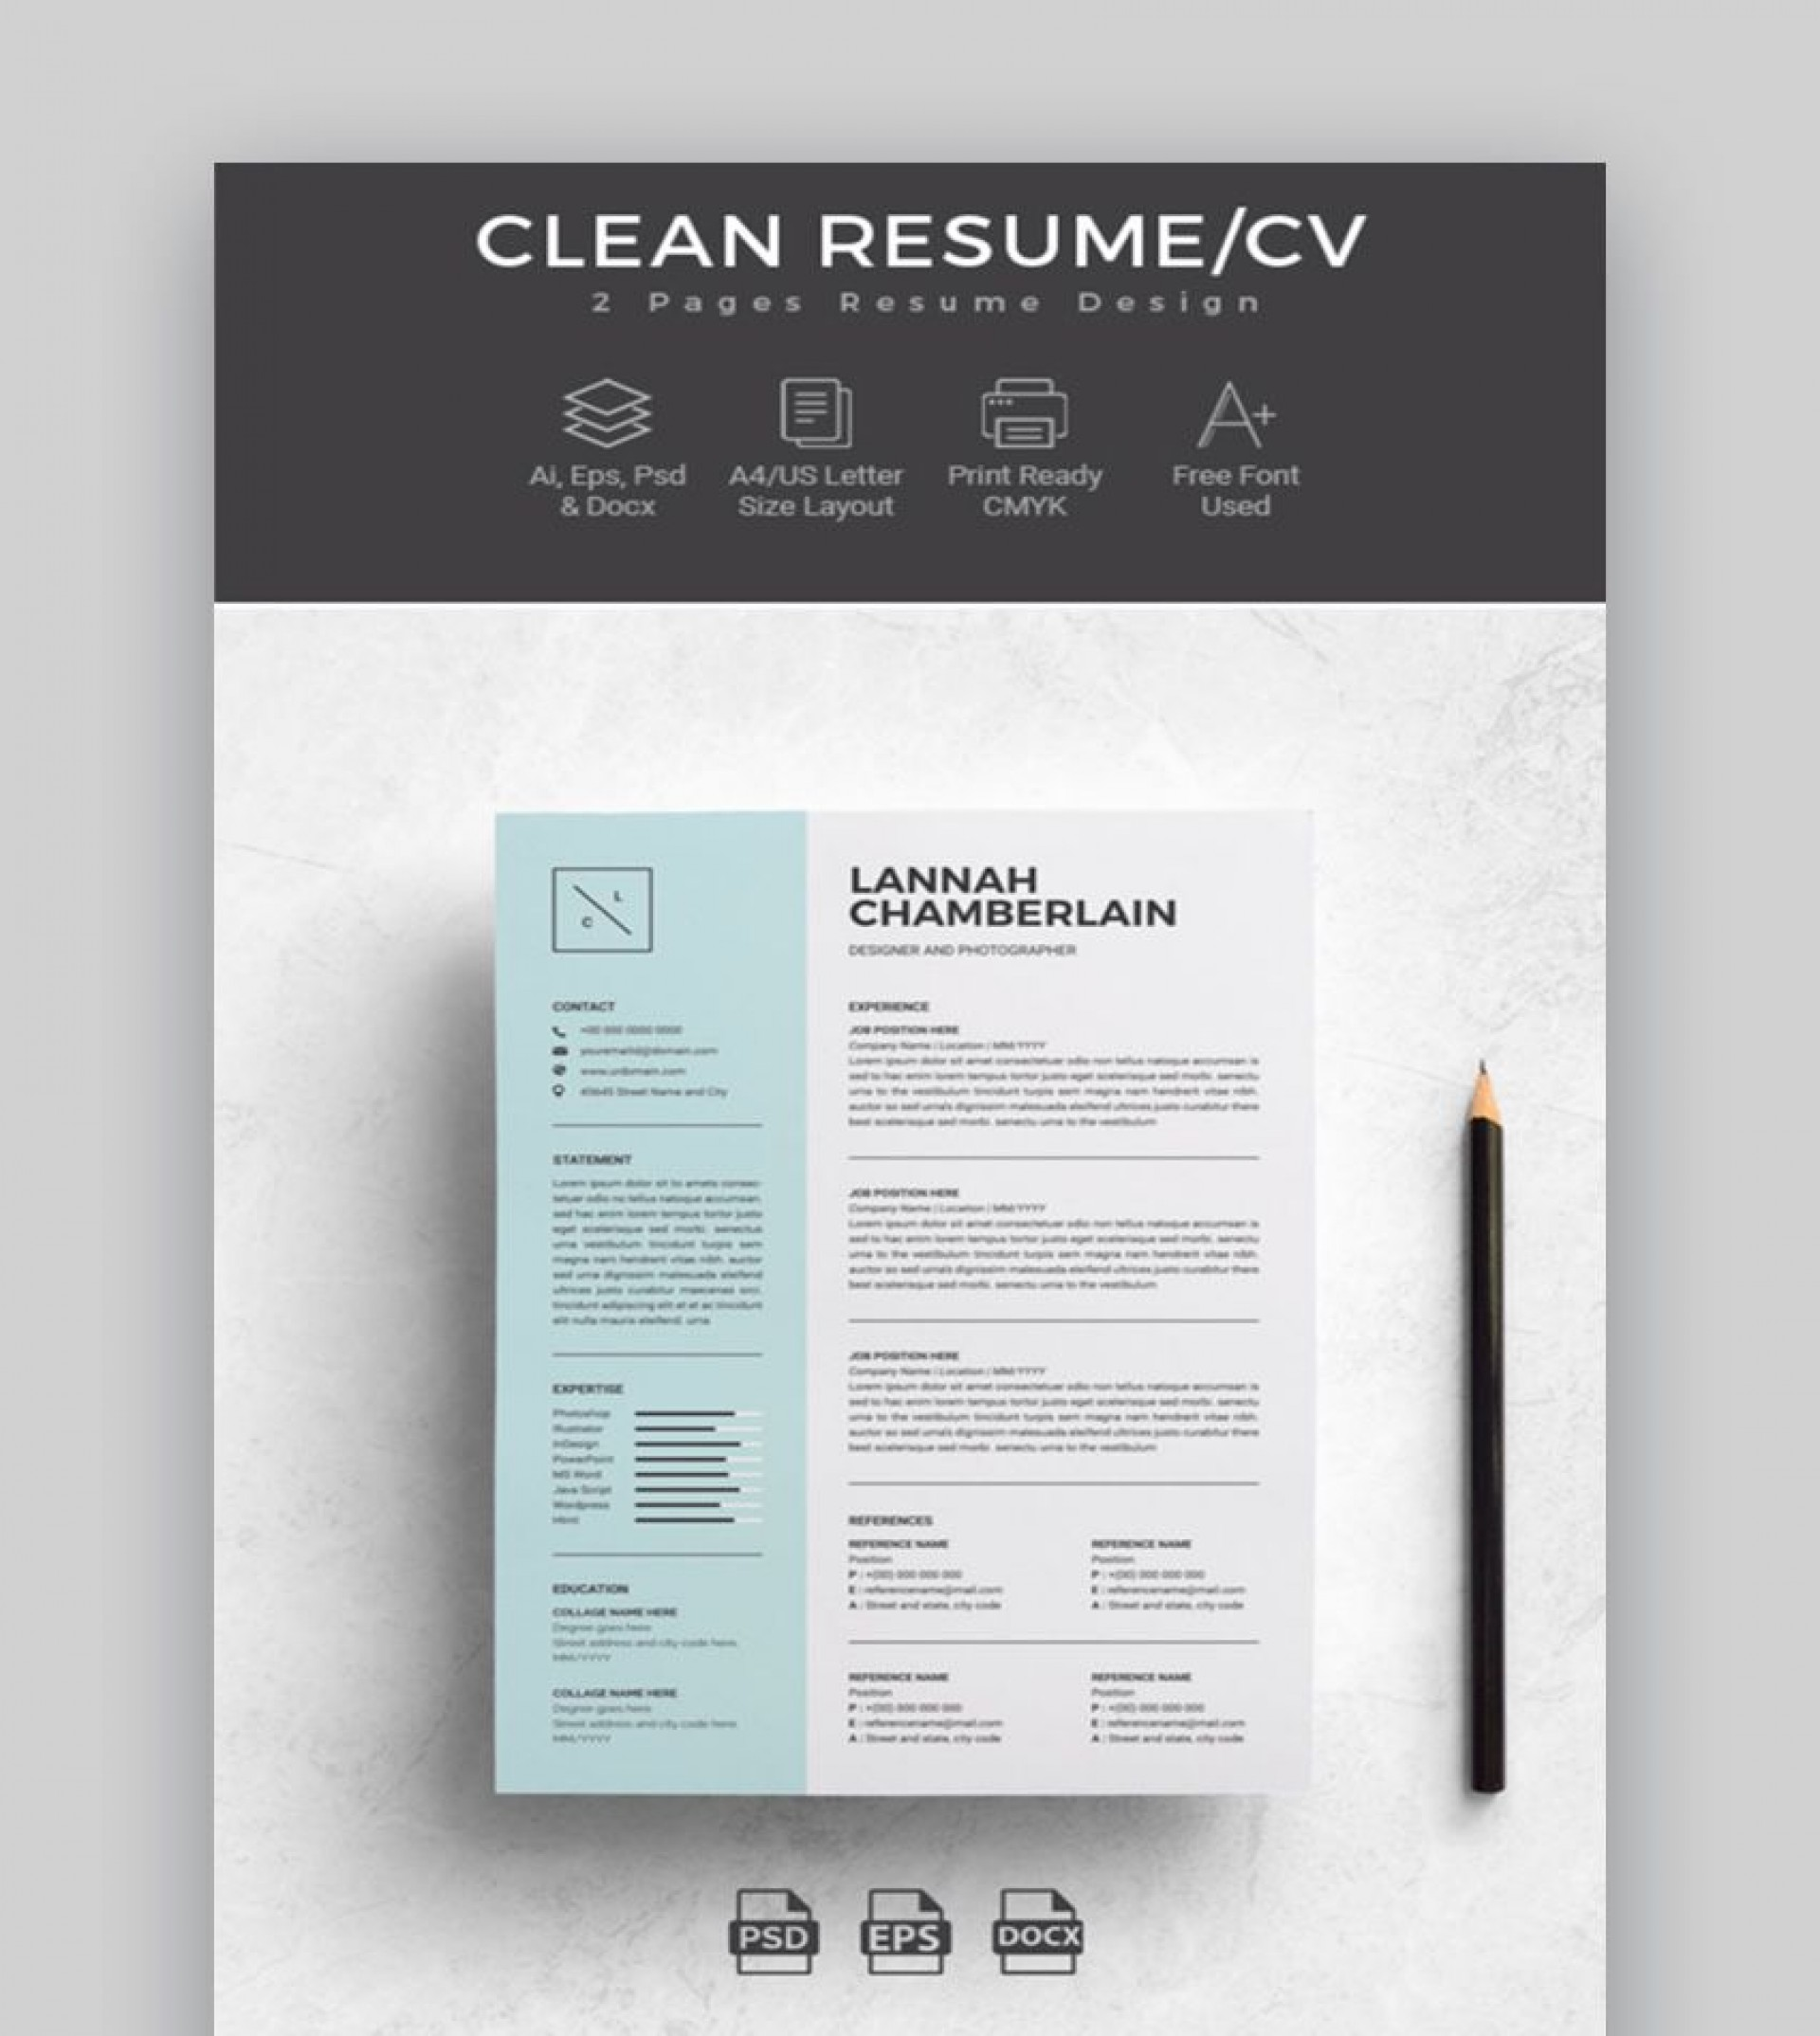 001 Frightening Resume Template Free Word High Resolution  Download Cv 2020 Format1920